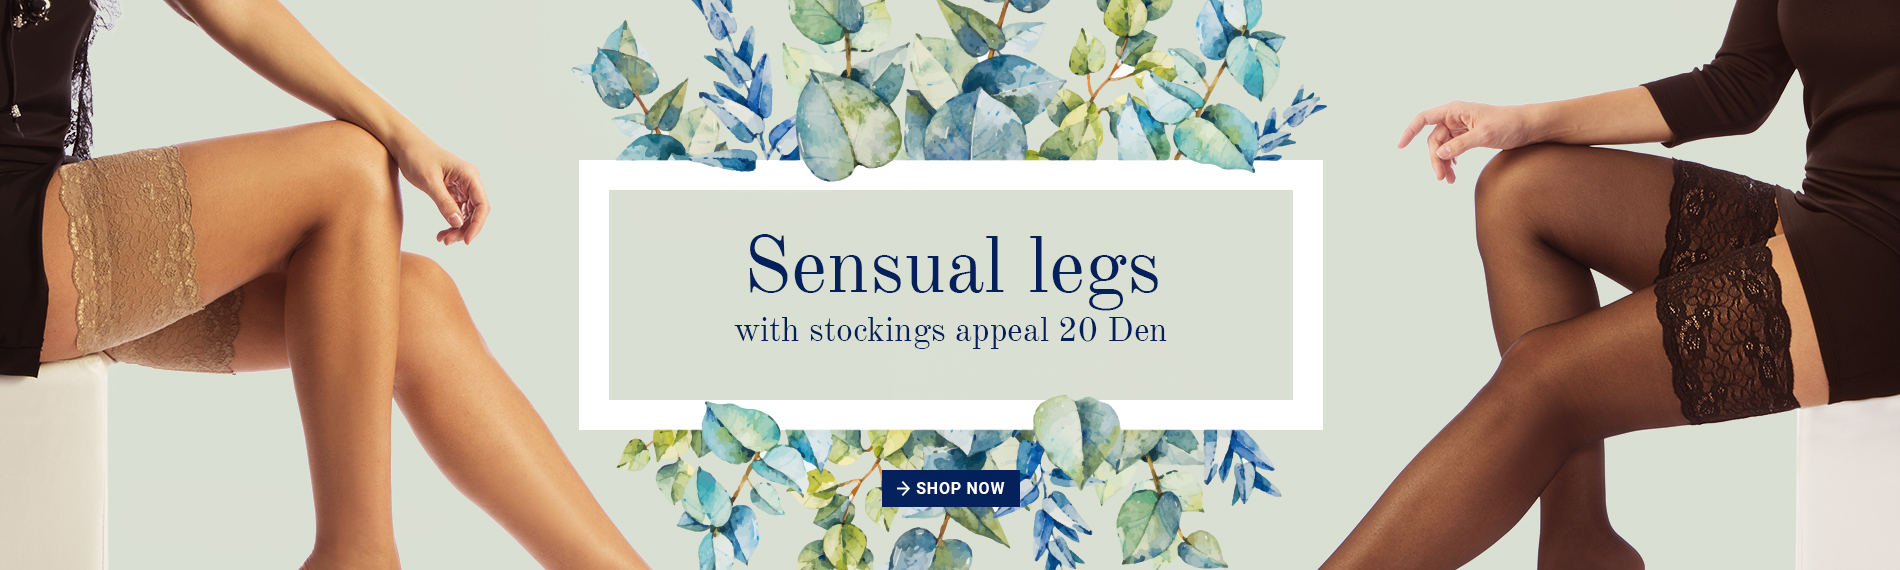 Sensual legs with stockings appeal 20 Den